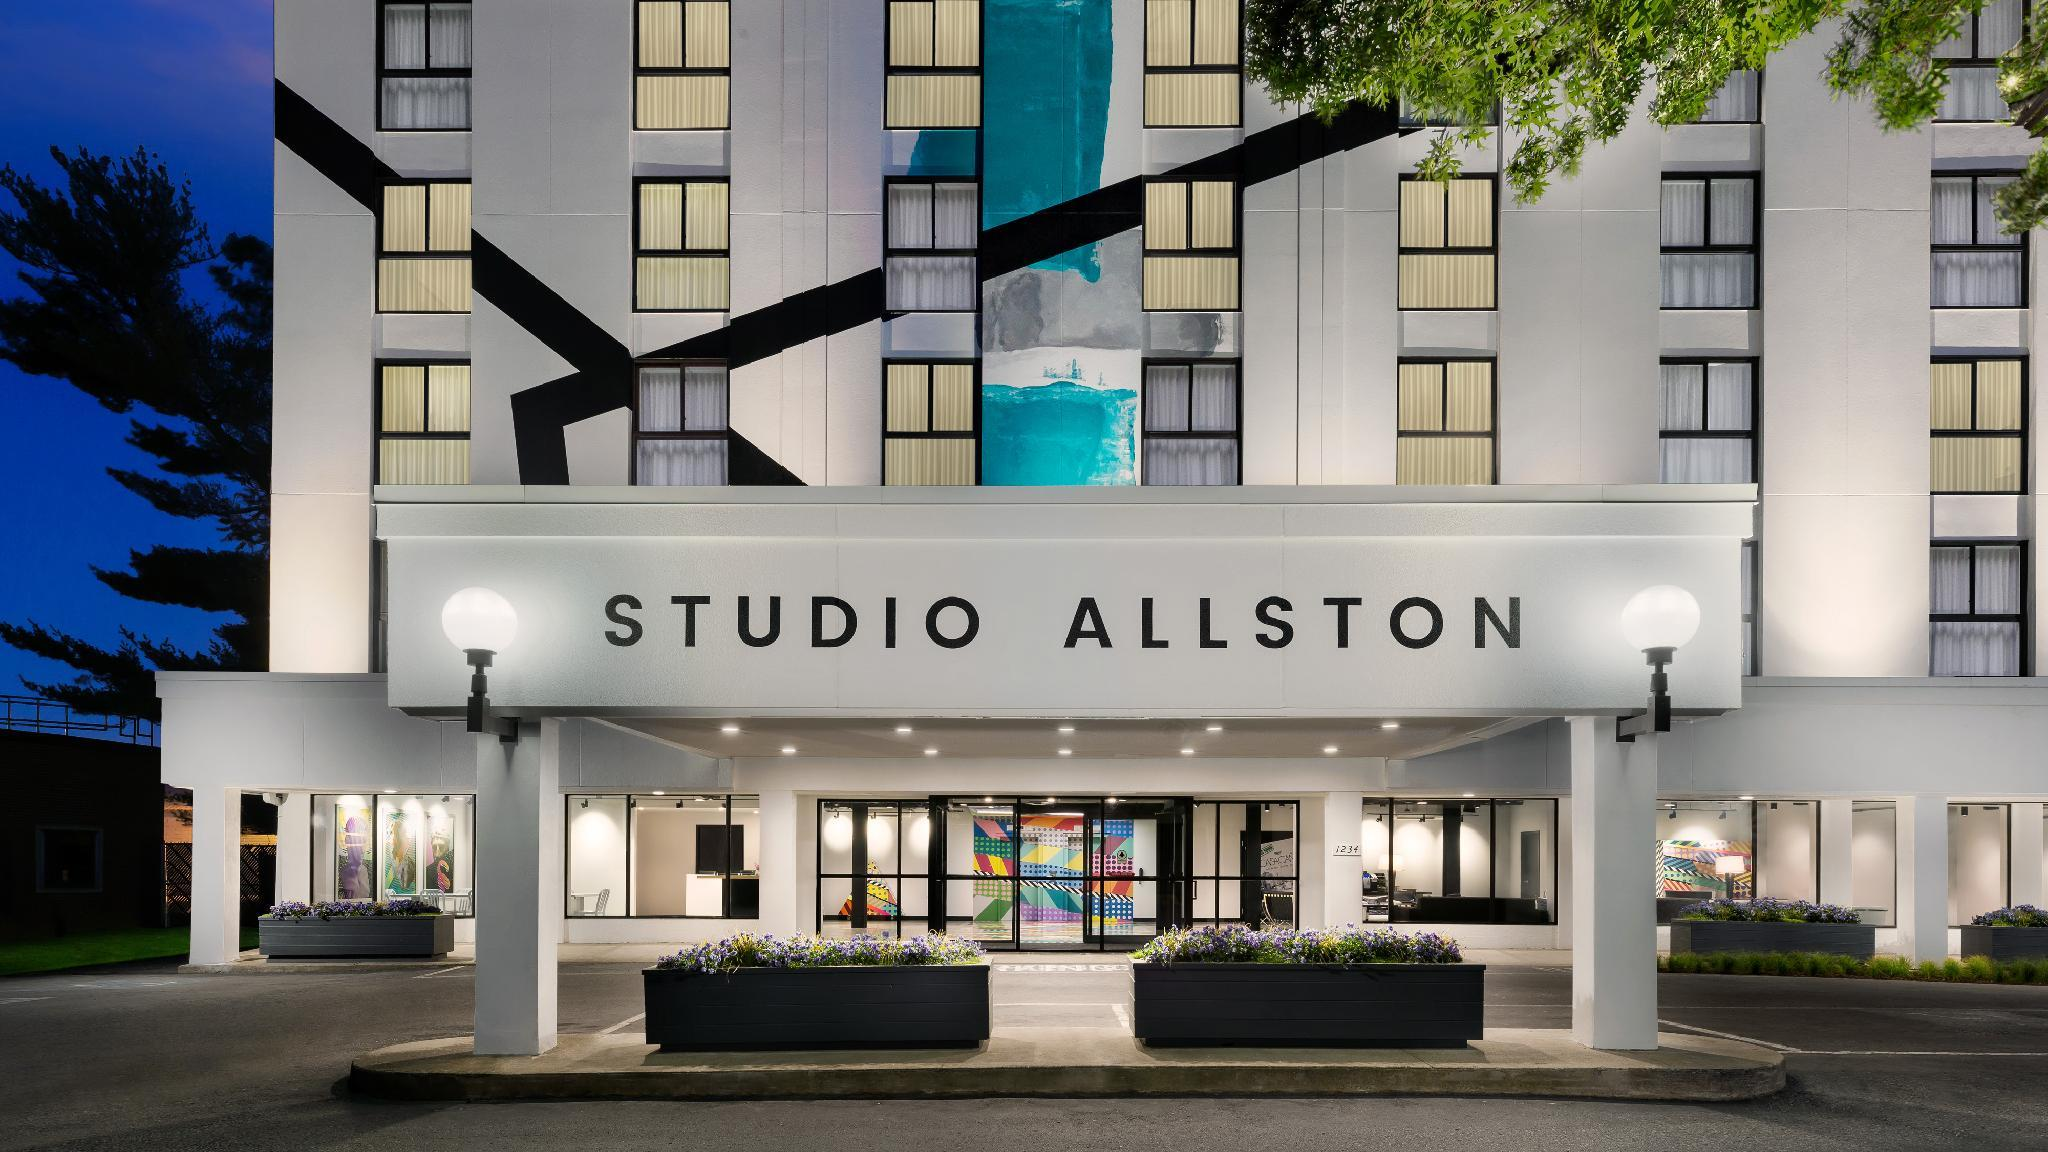 More About Studio Allston Hotel